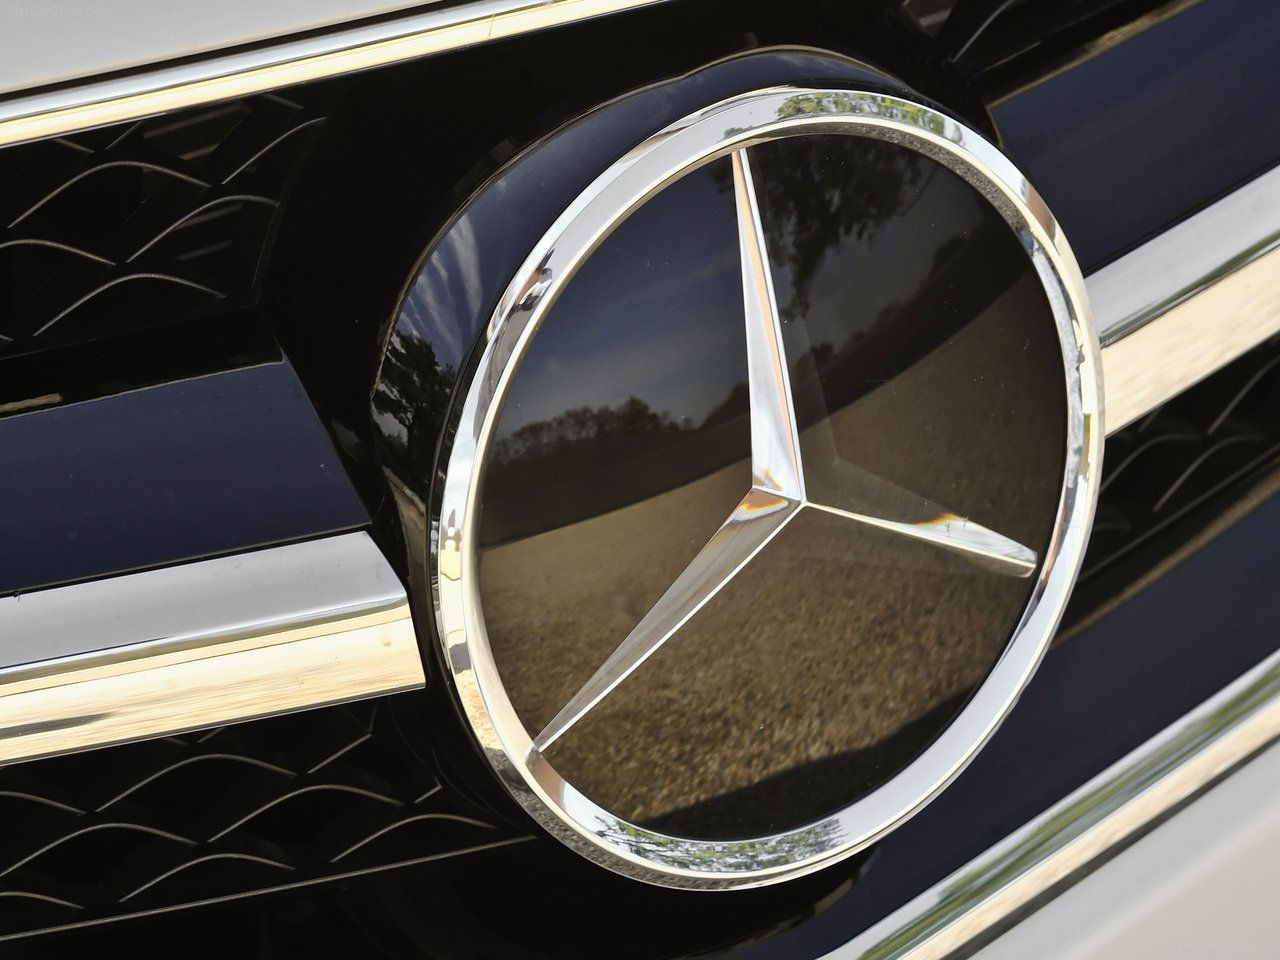 Mercedes Logo Mercedes Benz Car Symbol Meaning And History Car Brands Car Logos Meaning And Symbol